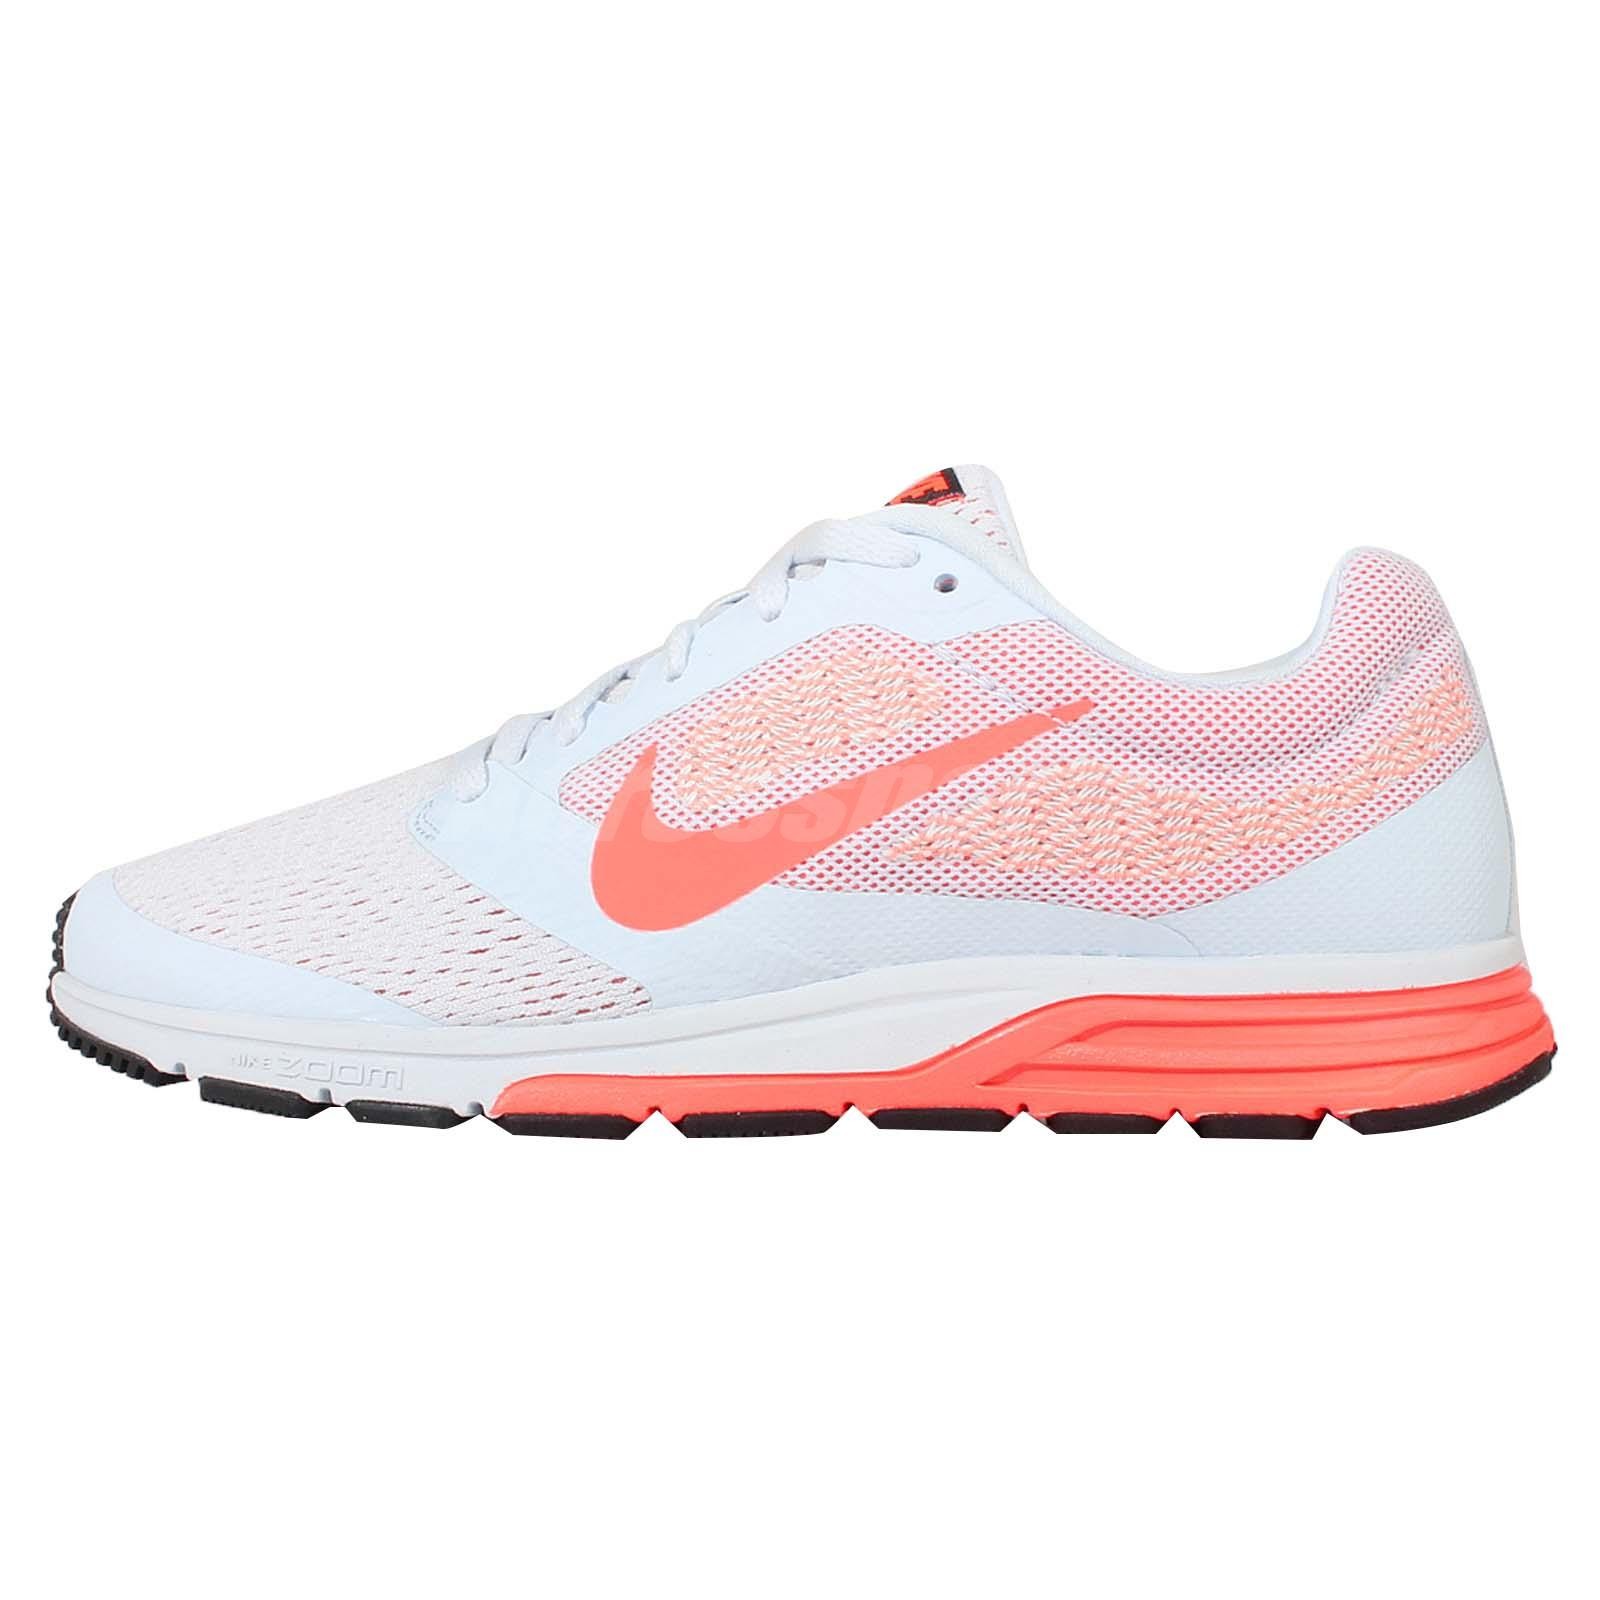 Running Shoes for Women. ASICS women's running shoes are built around the runner with the goal to help you run your best. Thinking forward through shoe technology and design, ASICS offers a variety of styles and foot support to help you achieve your perfect run.